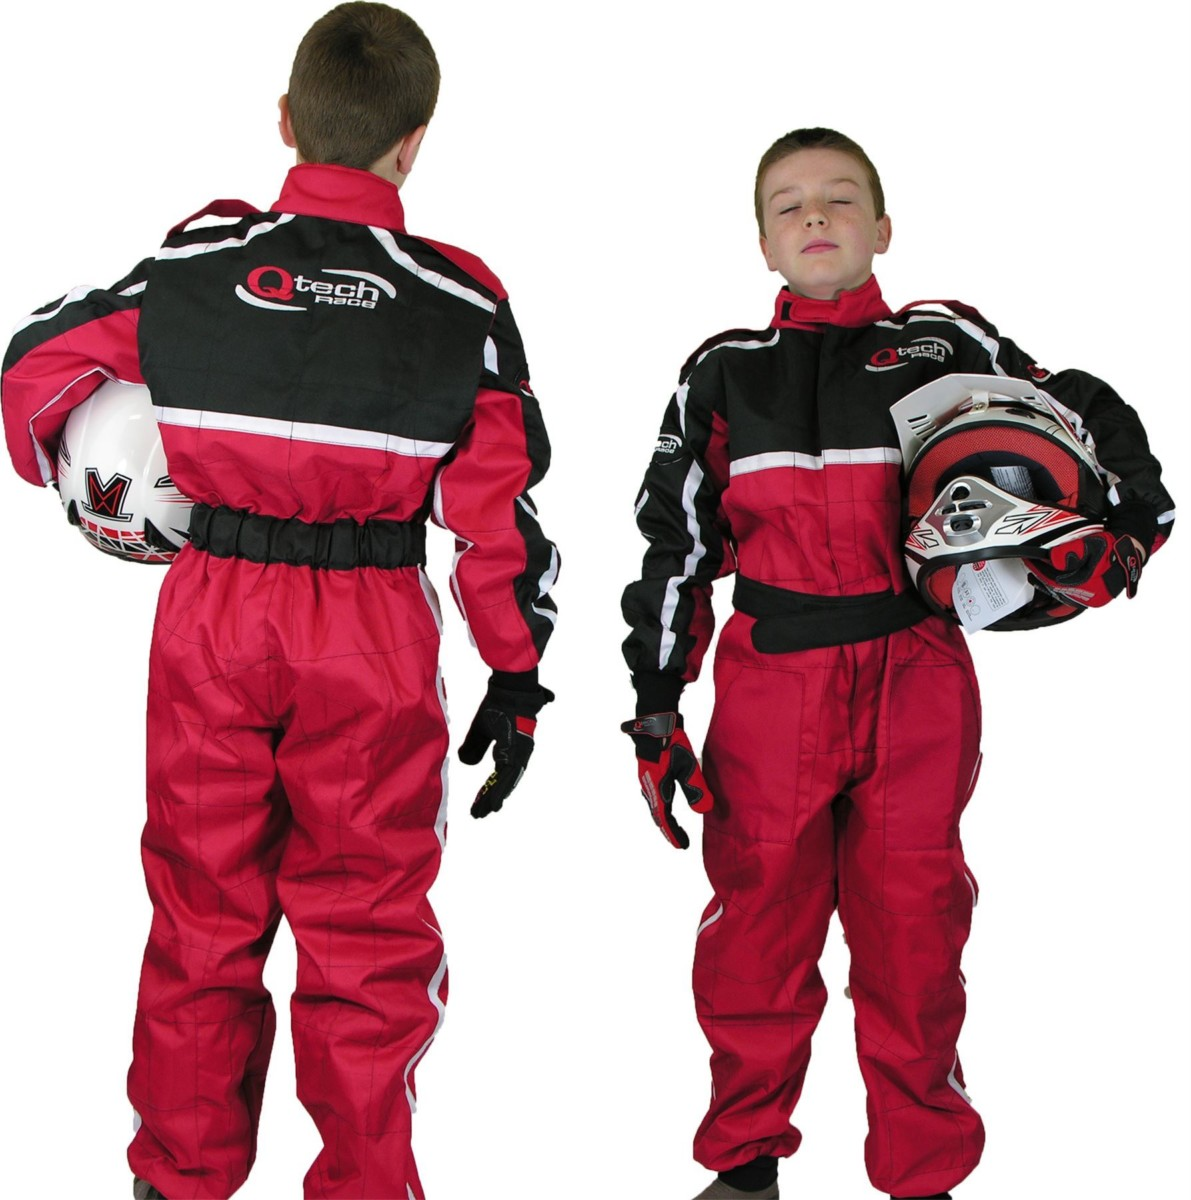 Enfants tenue de course combinaison karting motocross racing one piece